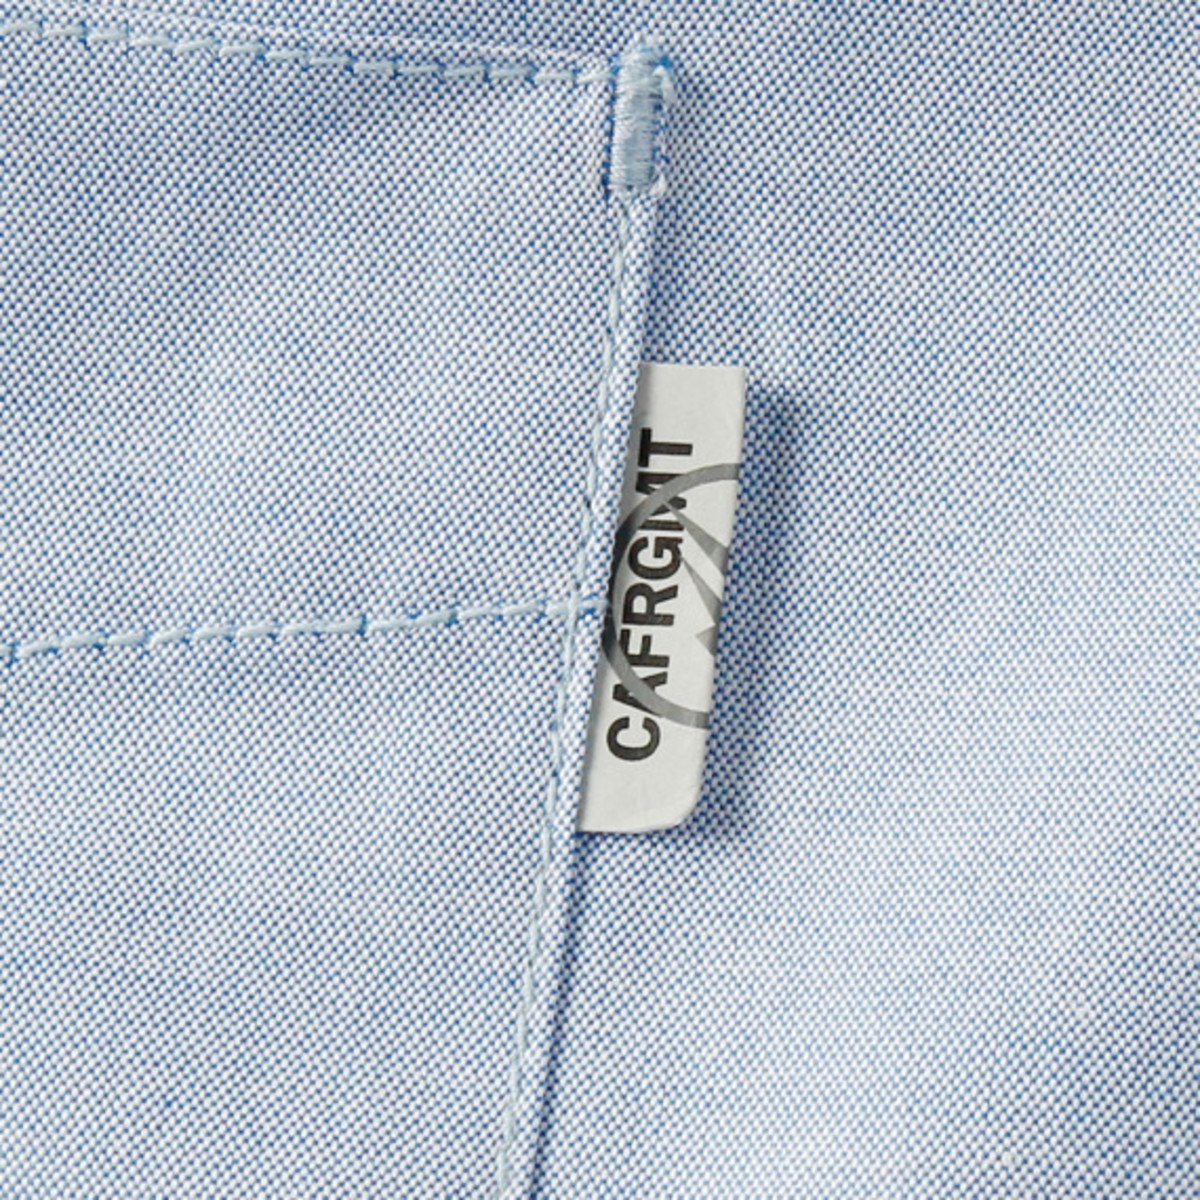 fragment-design-carhartt-wip-fall-winter-2014-collection-06